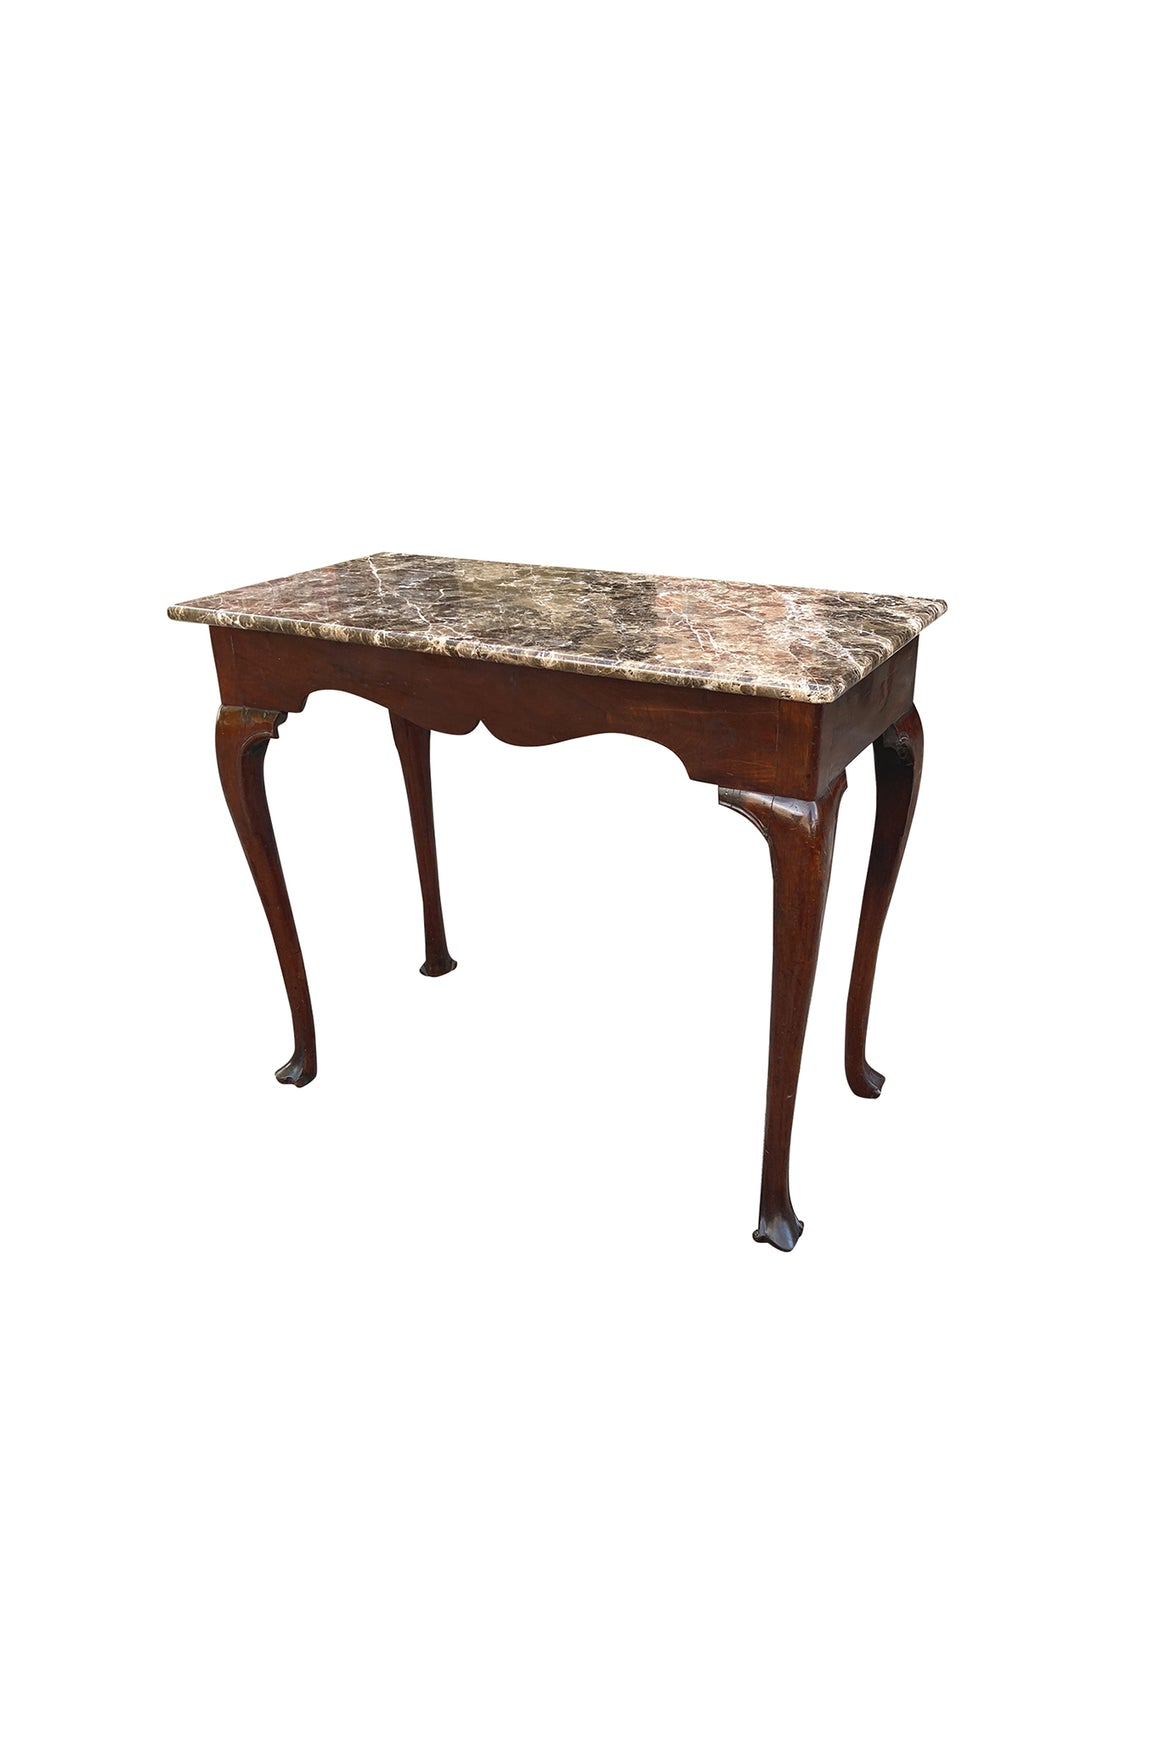 18th Century Irish Marble-Top Console Table